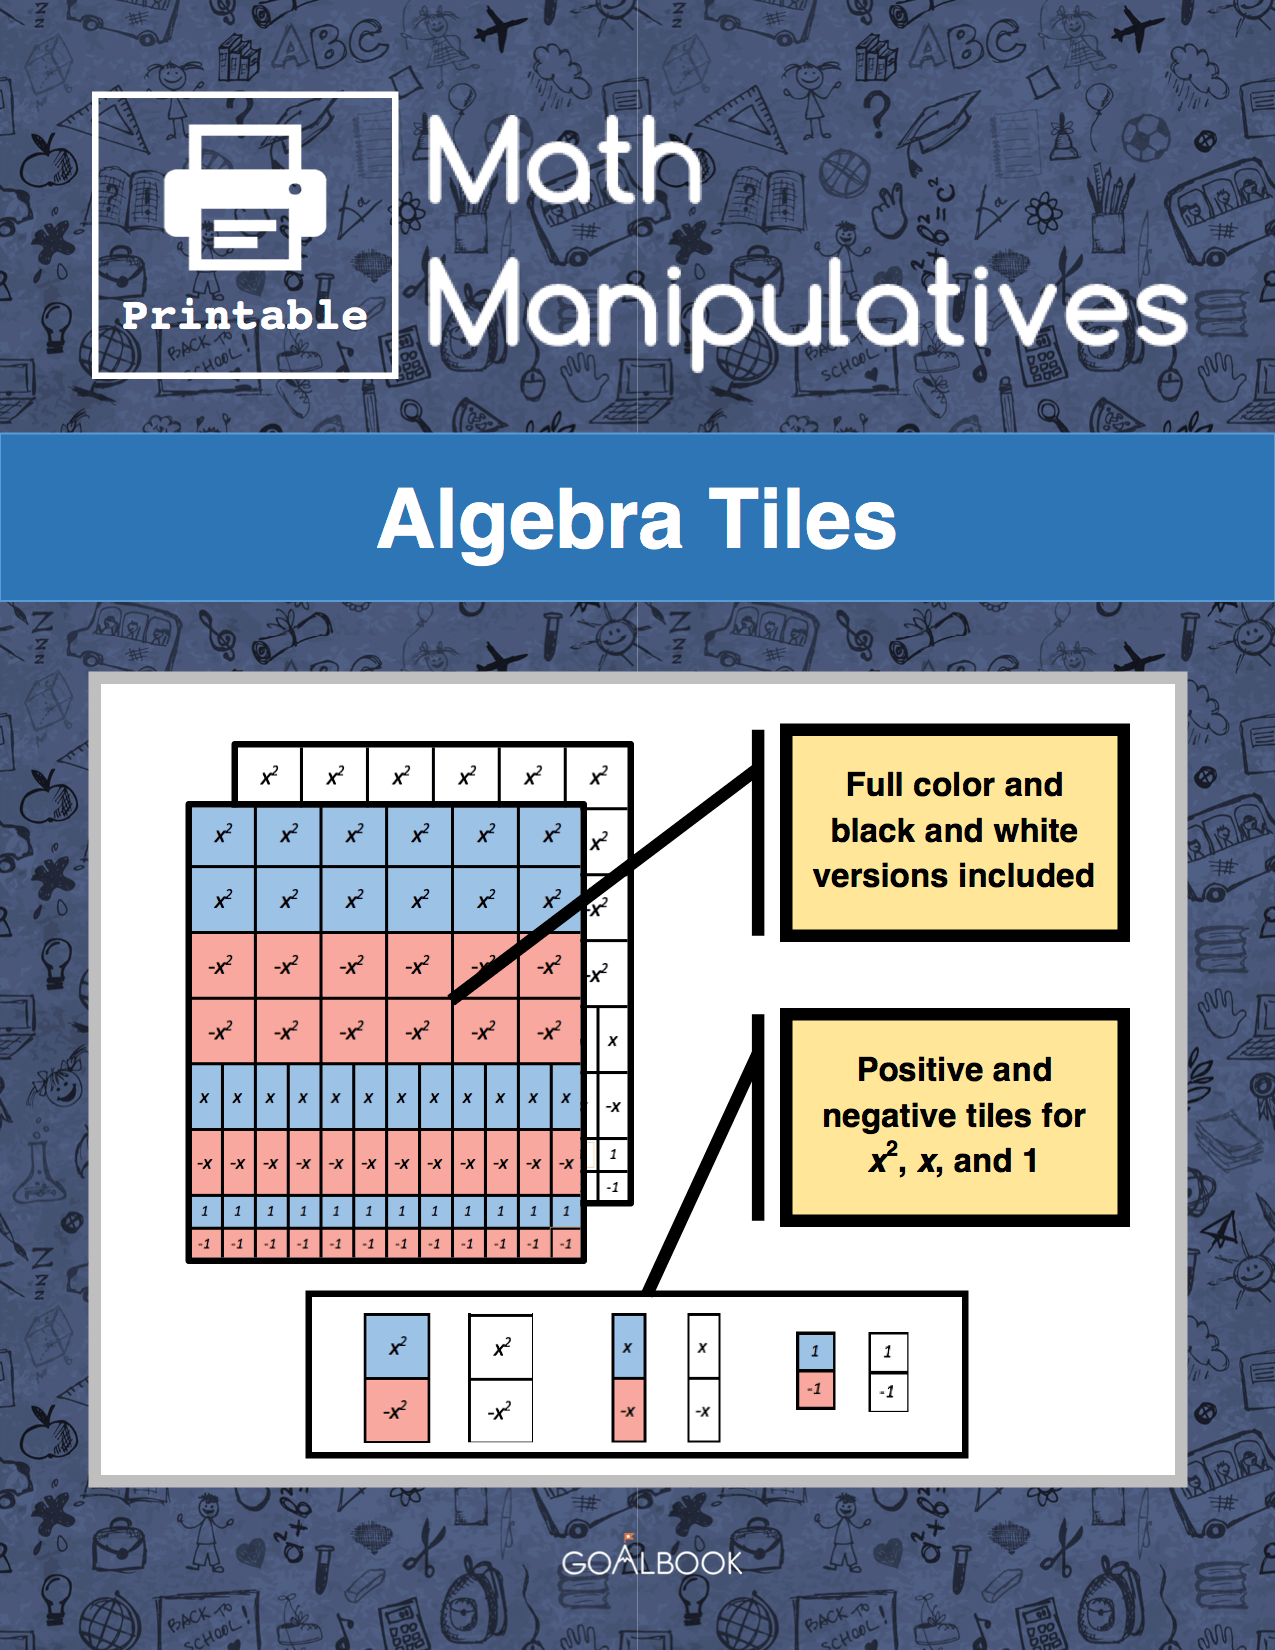 Algebra Tiles Udl Strategies Goalbook Toolkit